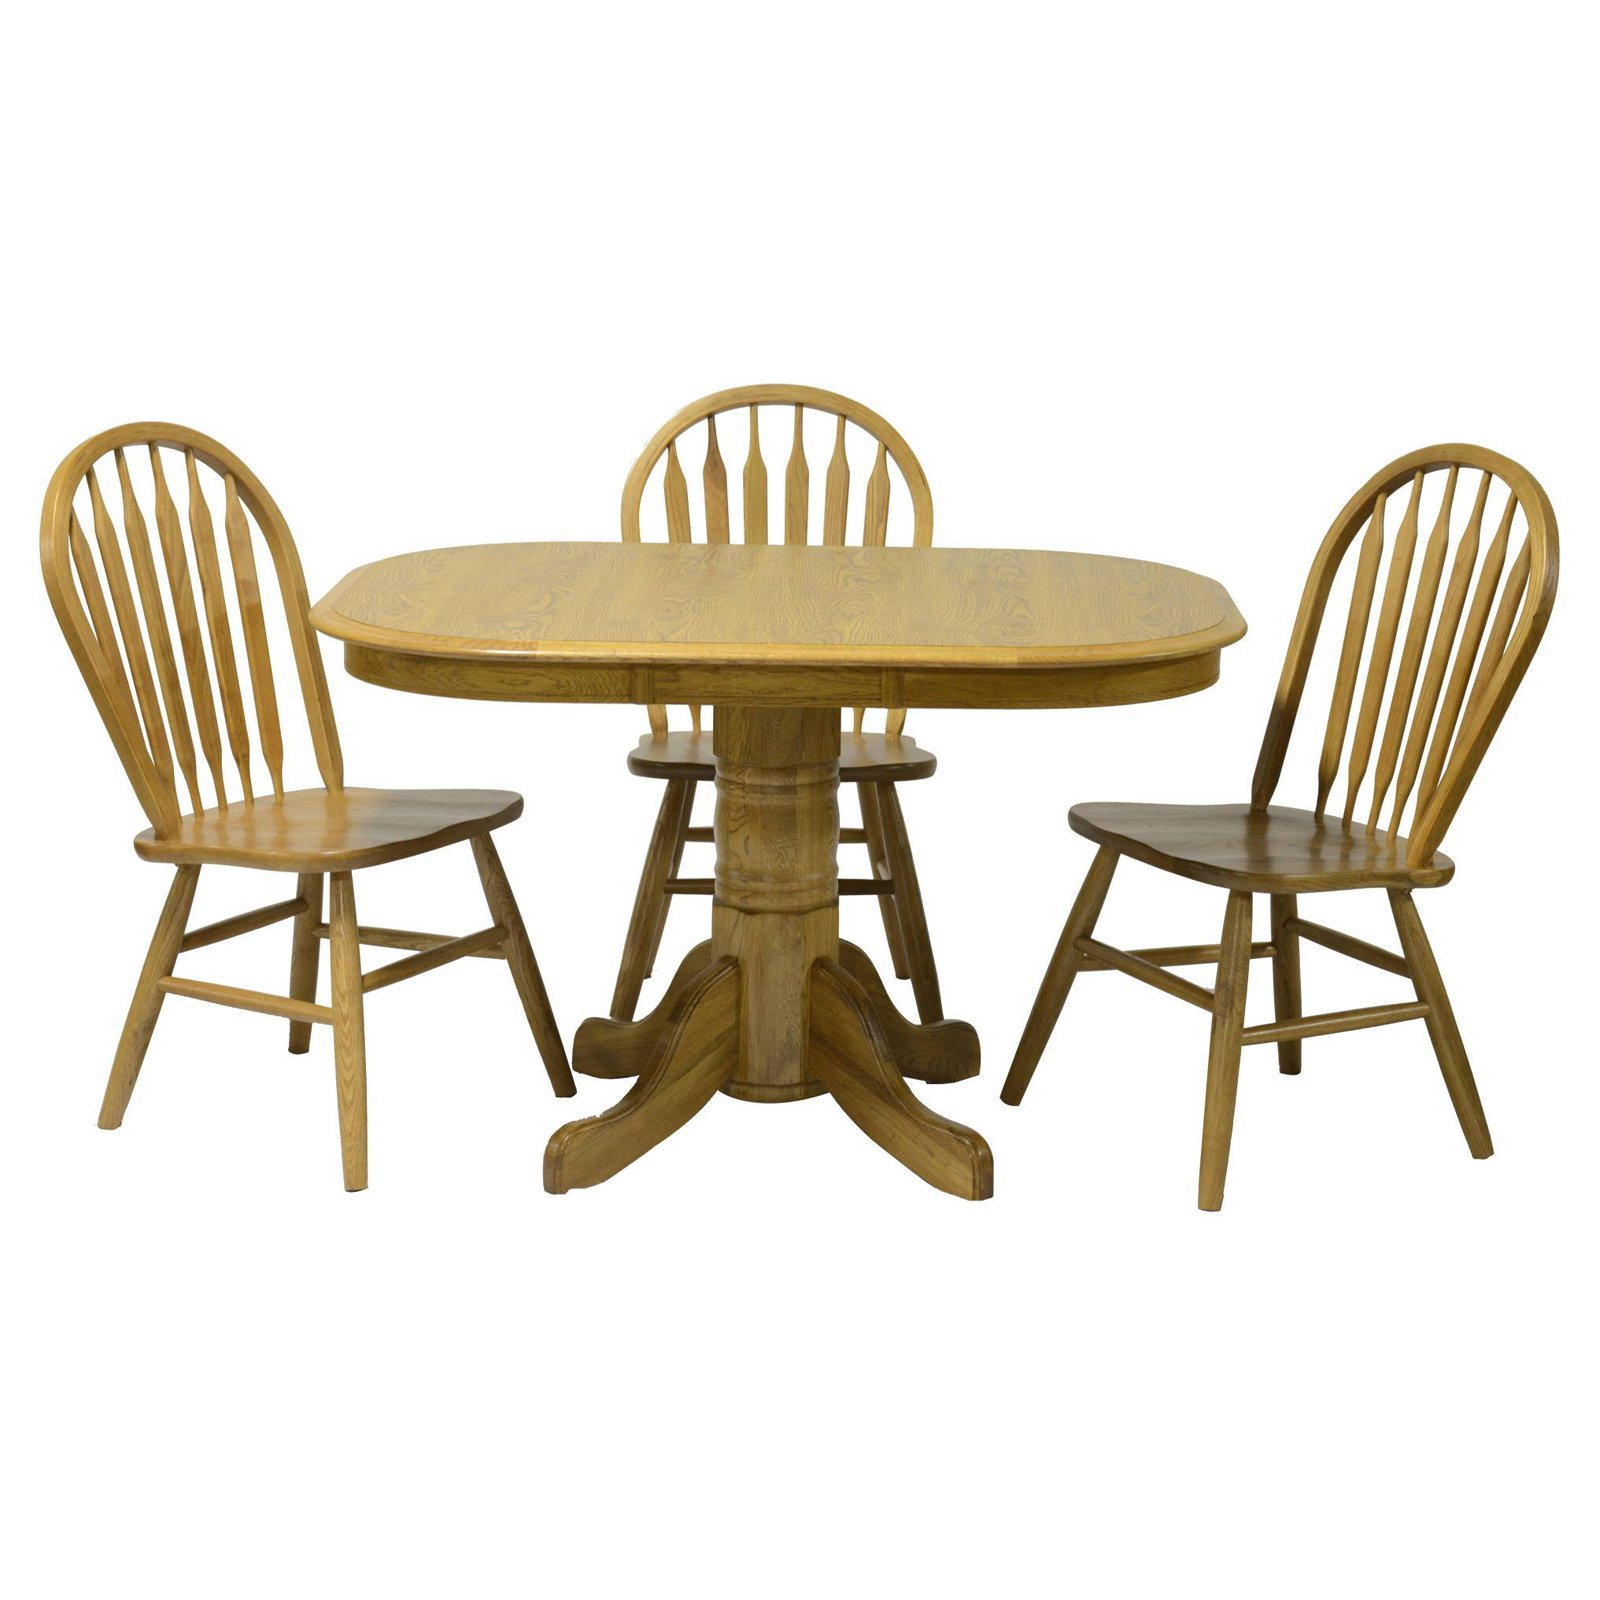 Chelsea Home Temple High Pedestal Dining Table by Chelsea Home Furniture LLC.